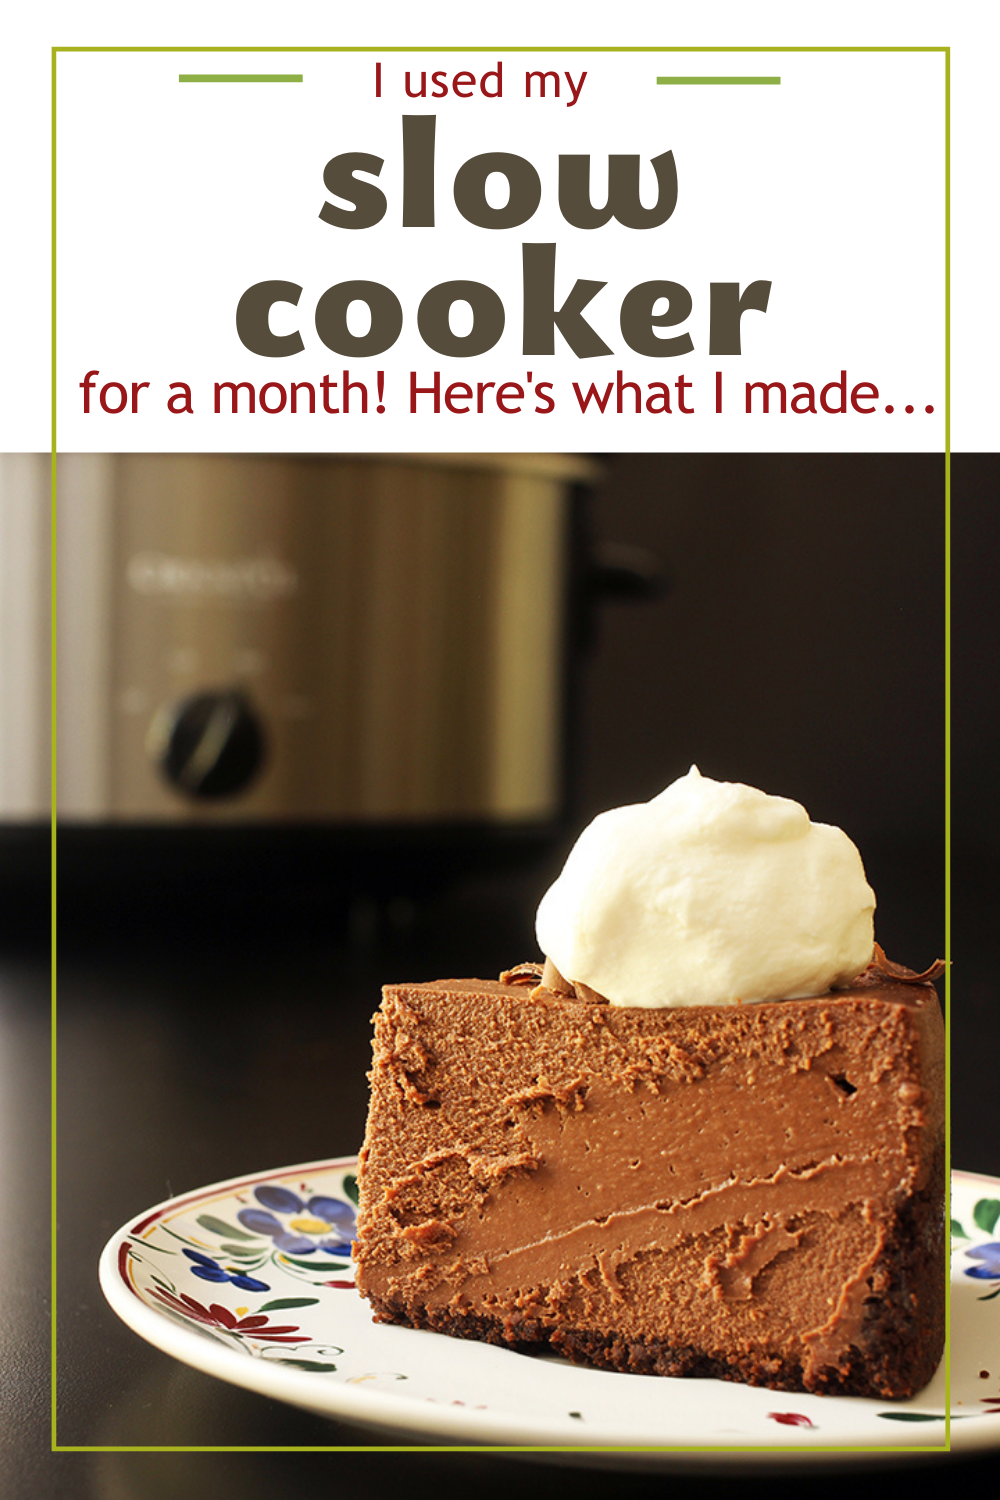 A piece of chocolate cheesecake on a plate, with Slow cooker